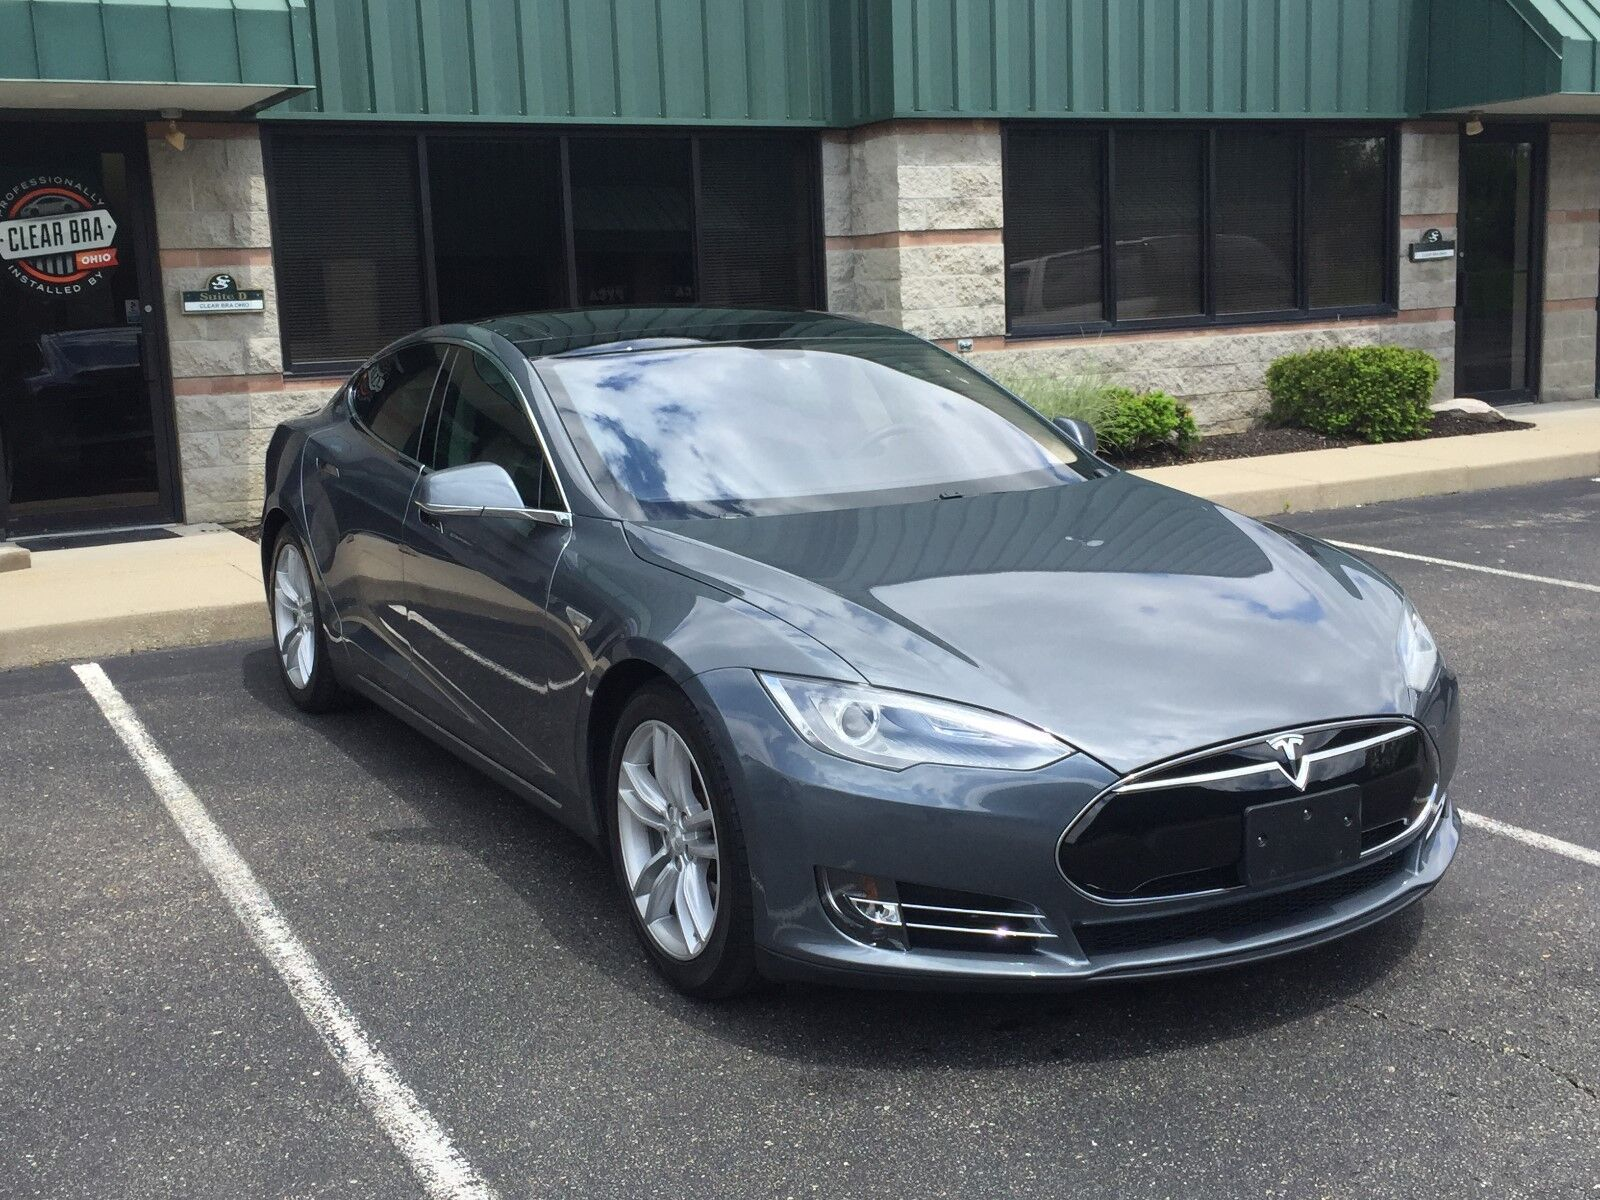 2013 tesla model s p85 performance tech panoramic roof xpel passport 9500ci used tesla. Black Bedroom Furniture Sets. Home Design Ideas